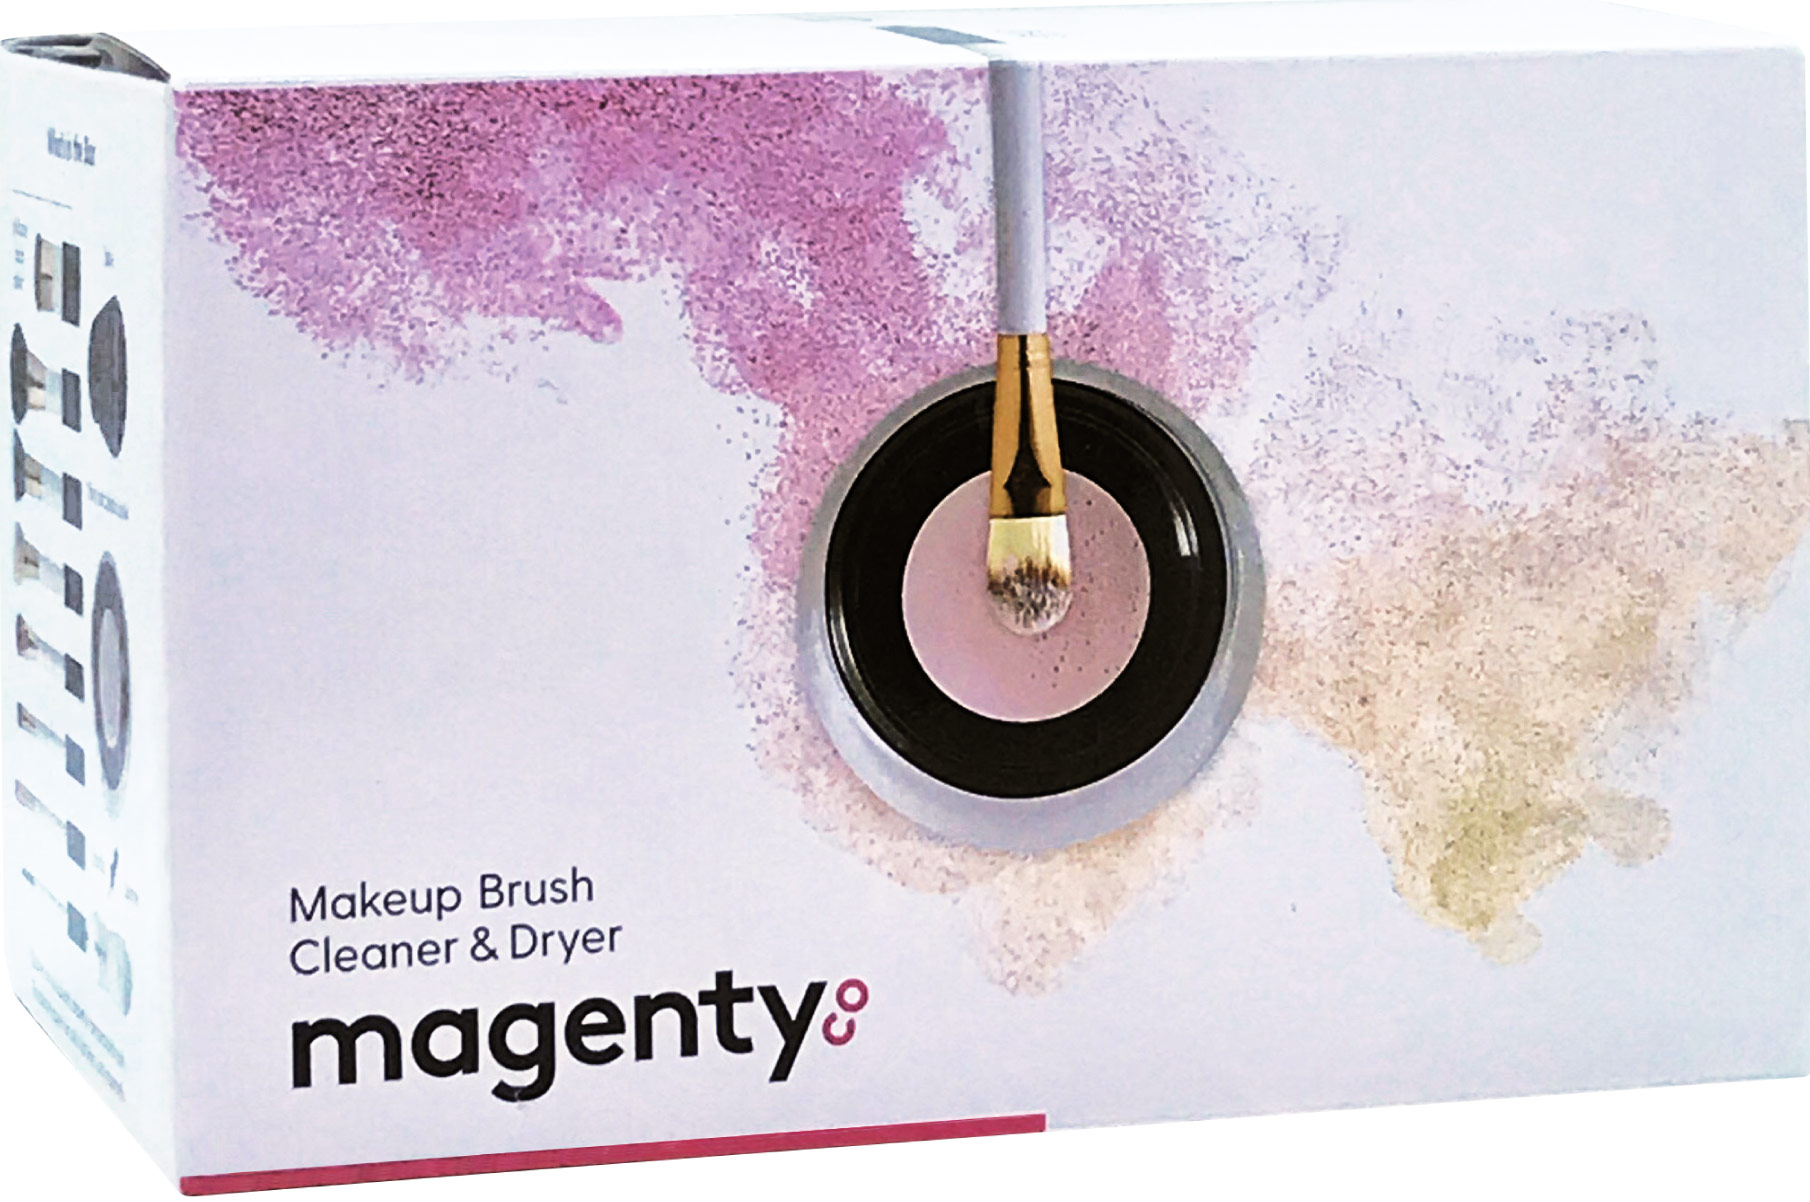 magenty makeup brush cleaner and dryer package design